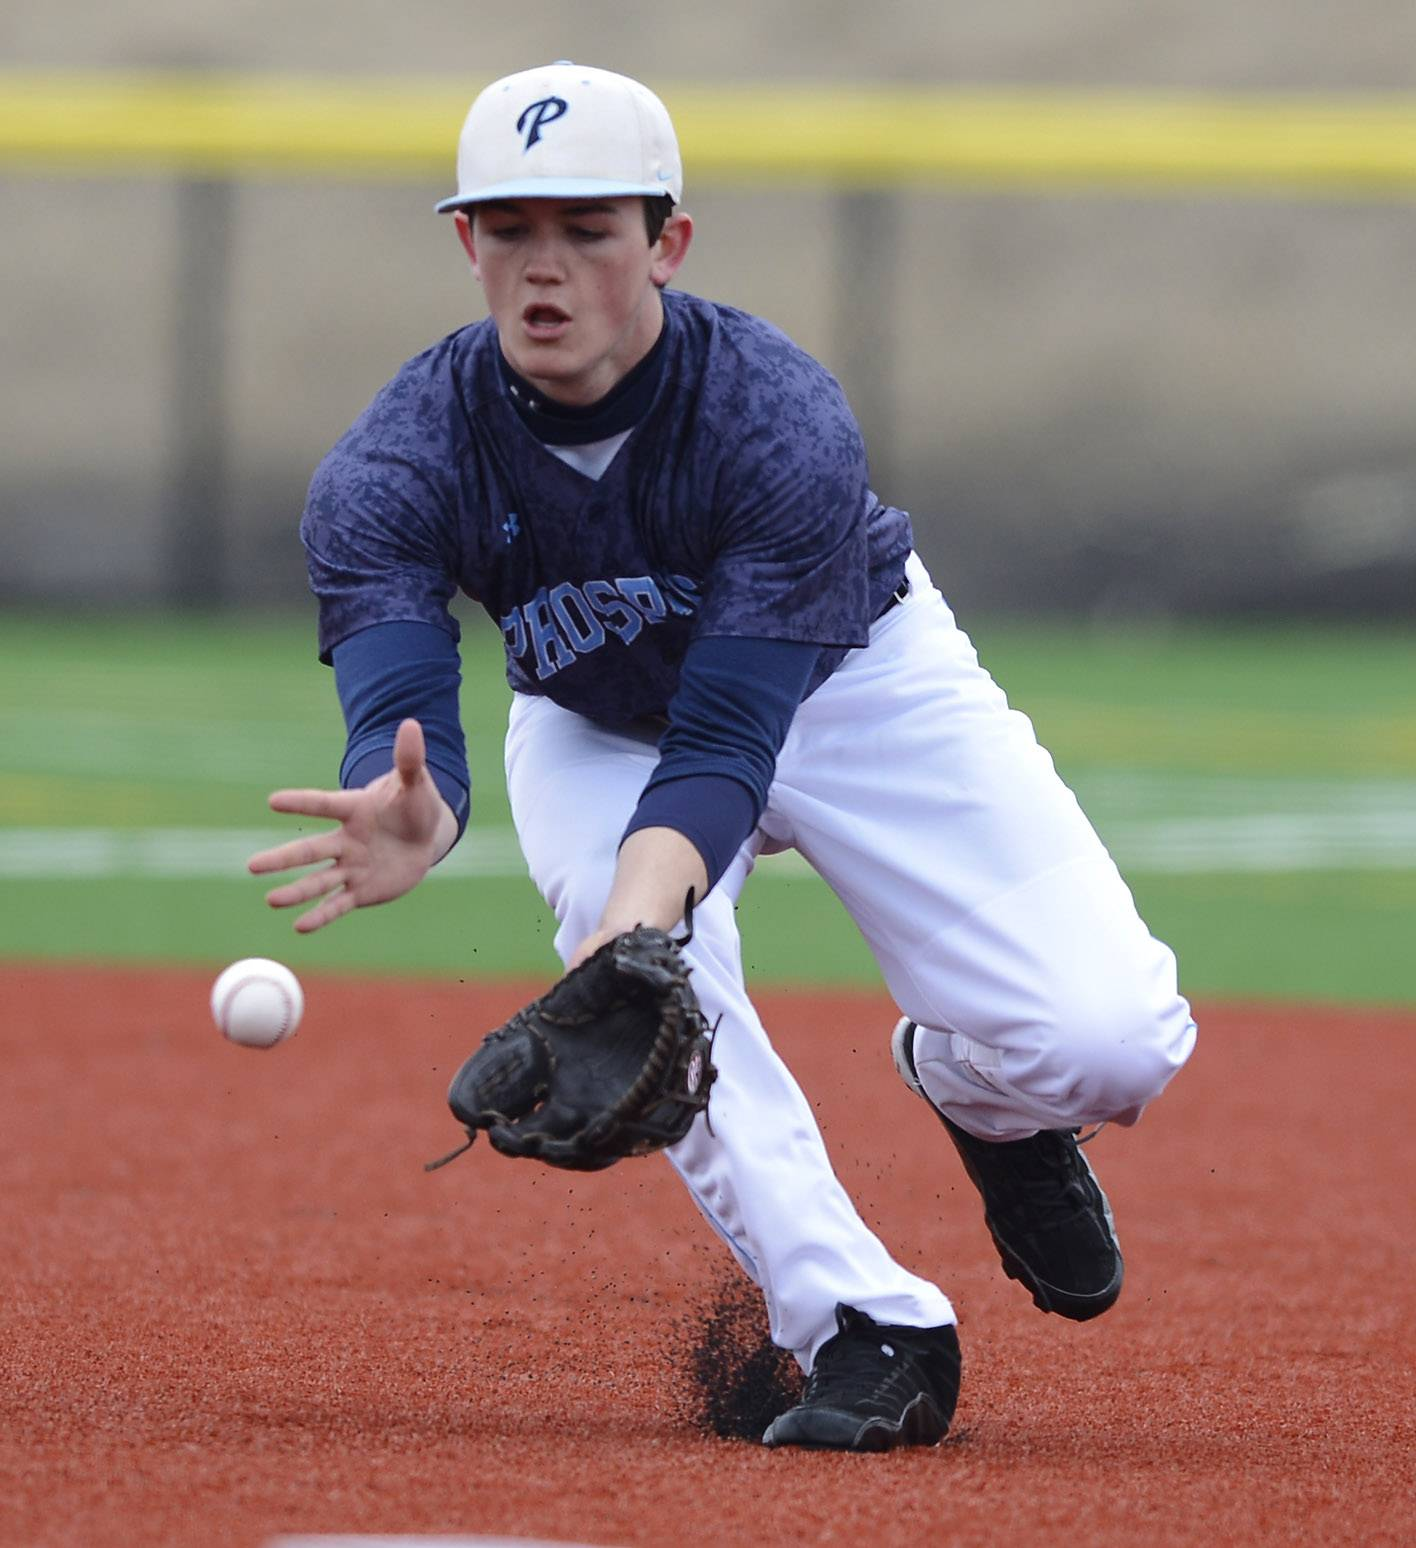 Prospect third baseman Patrick Donohue fields a groundball during Friday's game against Hinsdale Central at Heritage Park in Wheeling.